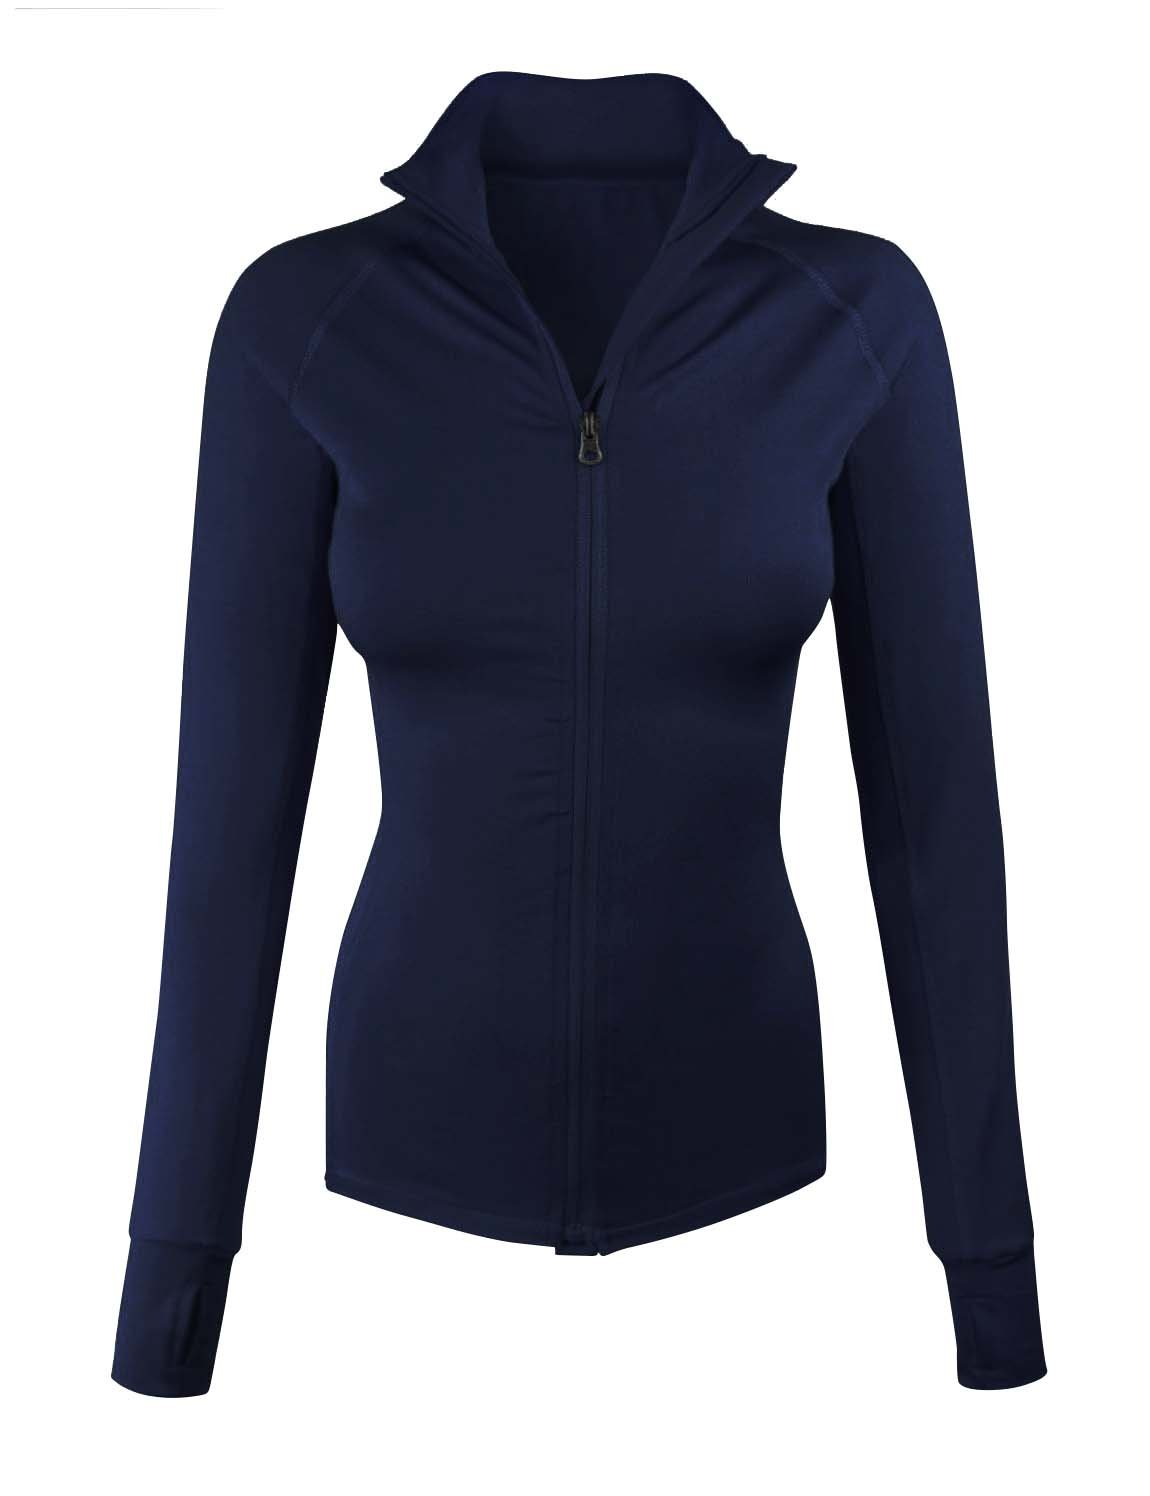 makeitmint Women's Comfy Zip Up Stretchy Work Out Track Jacket w/ Back Pocket SMALL YJZ0002_02NAVY